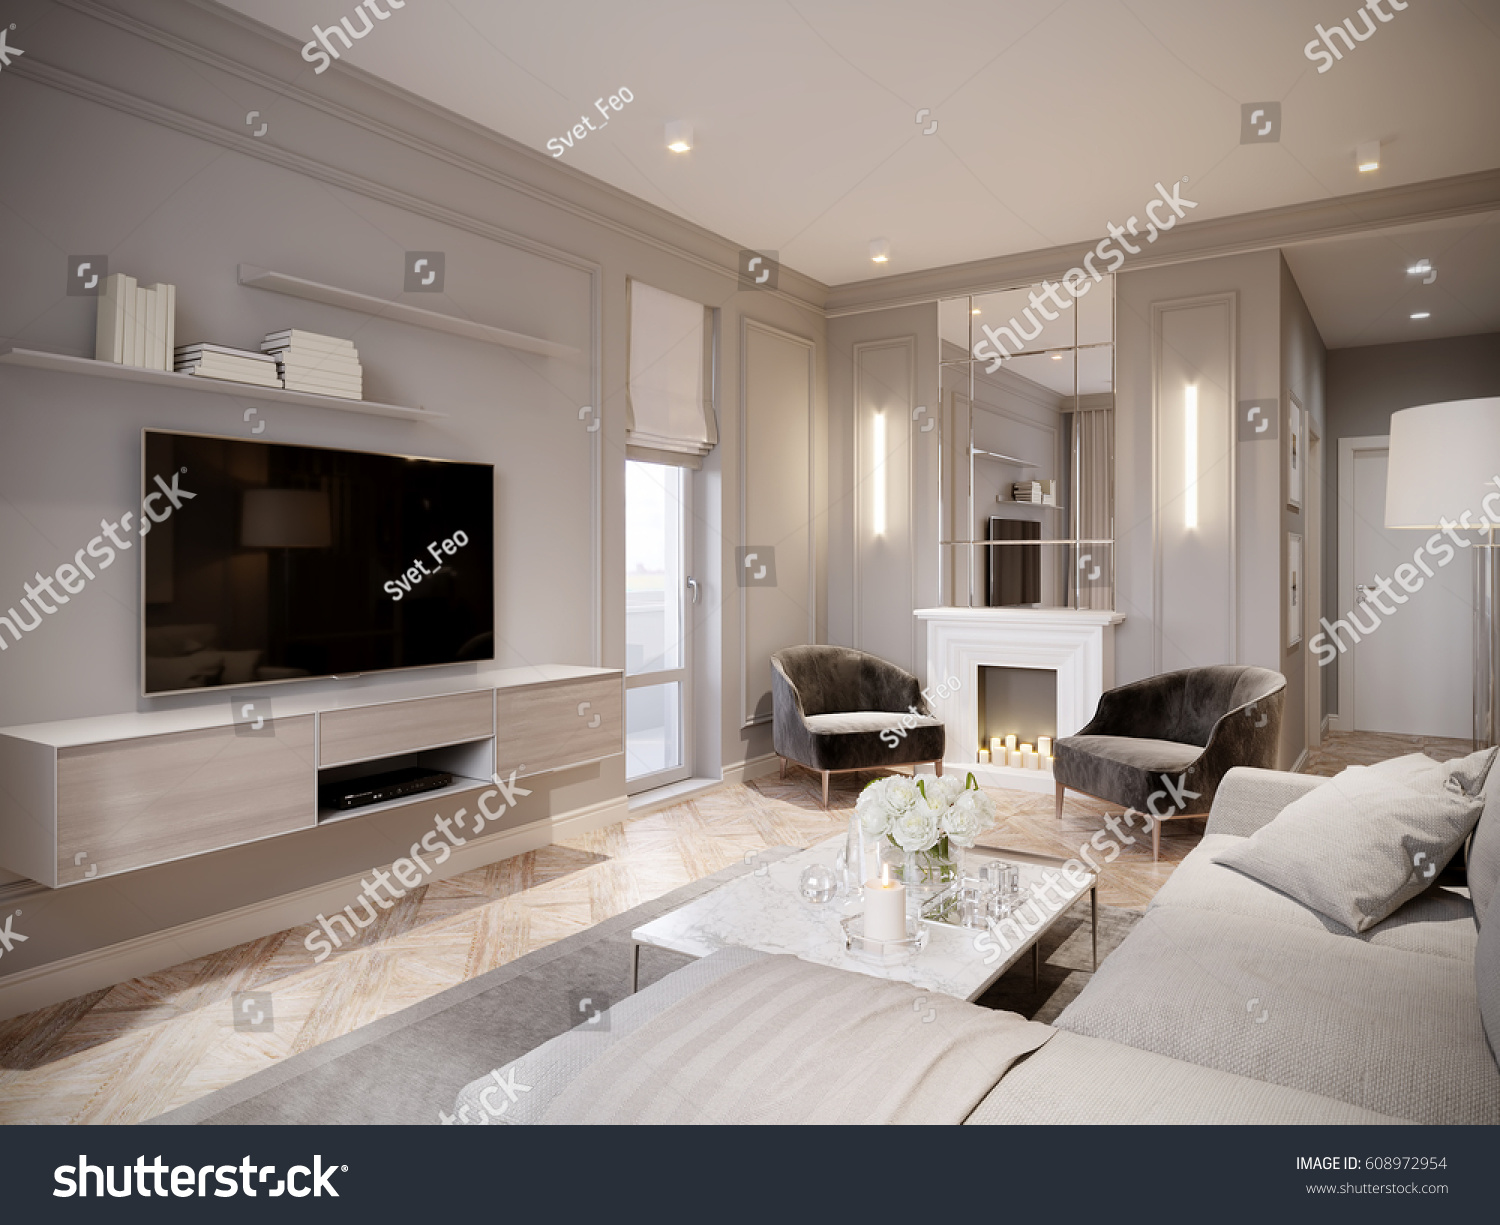 Design Beige Room modern beige gray living room interior stock illustration design with large light sofa white fireplace with